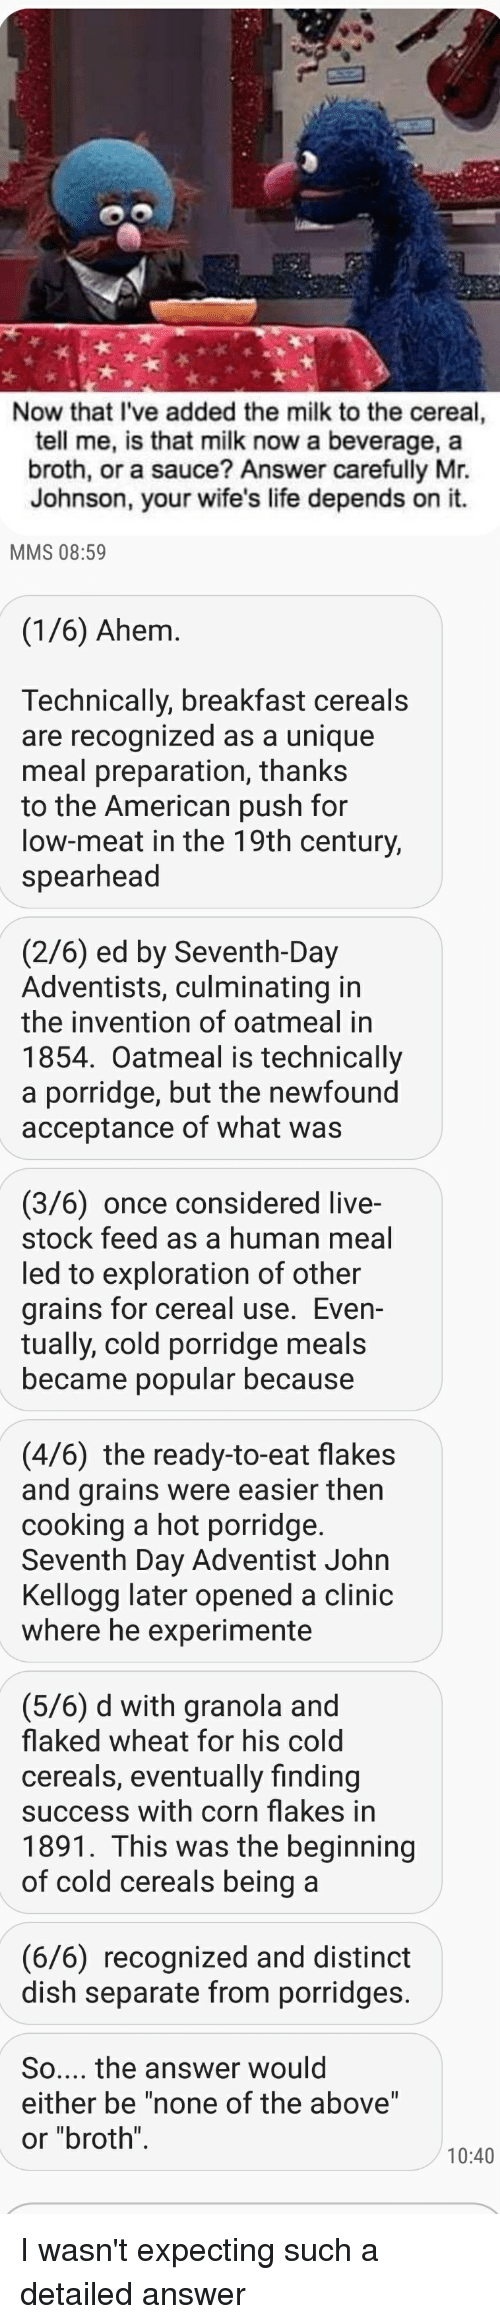 """seventh day adventist: Now that I've added the milk to the cereal,  tell me, is that milk now a beverage, a  broth, or a sauce? Answer carefully Mtr.  Johnson, your wife's life depends on it.  MMS 08:59  (1/6) Ahem.  Technically, breakfast cereals  are recognized as a unique  meal preparation, thanks  to the American push for  low-meat in the 19th century,  spearhead  (2/6) ed by Seventh-Day  Adventists, culminating in  the invention of oatmeal in  1854. Oatmeal is technically  a porridge, but the newfound  acceptance of what was  (3/6) once considered live-  stock feed as a human meal  led to exploration of other  grains for cereal use. Even-  tually, cold porridge meals  became popular because  (4/6) the ready-to-eat flakes  and grains were easier then  cooking a hot porridge.  Seventh Day Adventist John  Kellogg later opened a clinic  where he experimente  (5/6) d with granola and  flaked wheat for his cold  cereals, eventually finding  success with corn flakes in  1891. This was the beginning  of cold cereals being a  (6/6) recognized and distinct  dish separate from porridges.  So... the answer would  either be """"none of the above""""  or """"broth  10:40 I wasn't expecting such a detailed answer"""